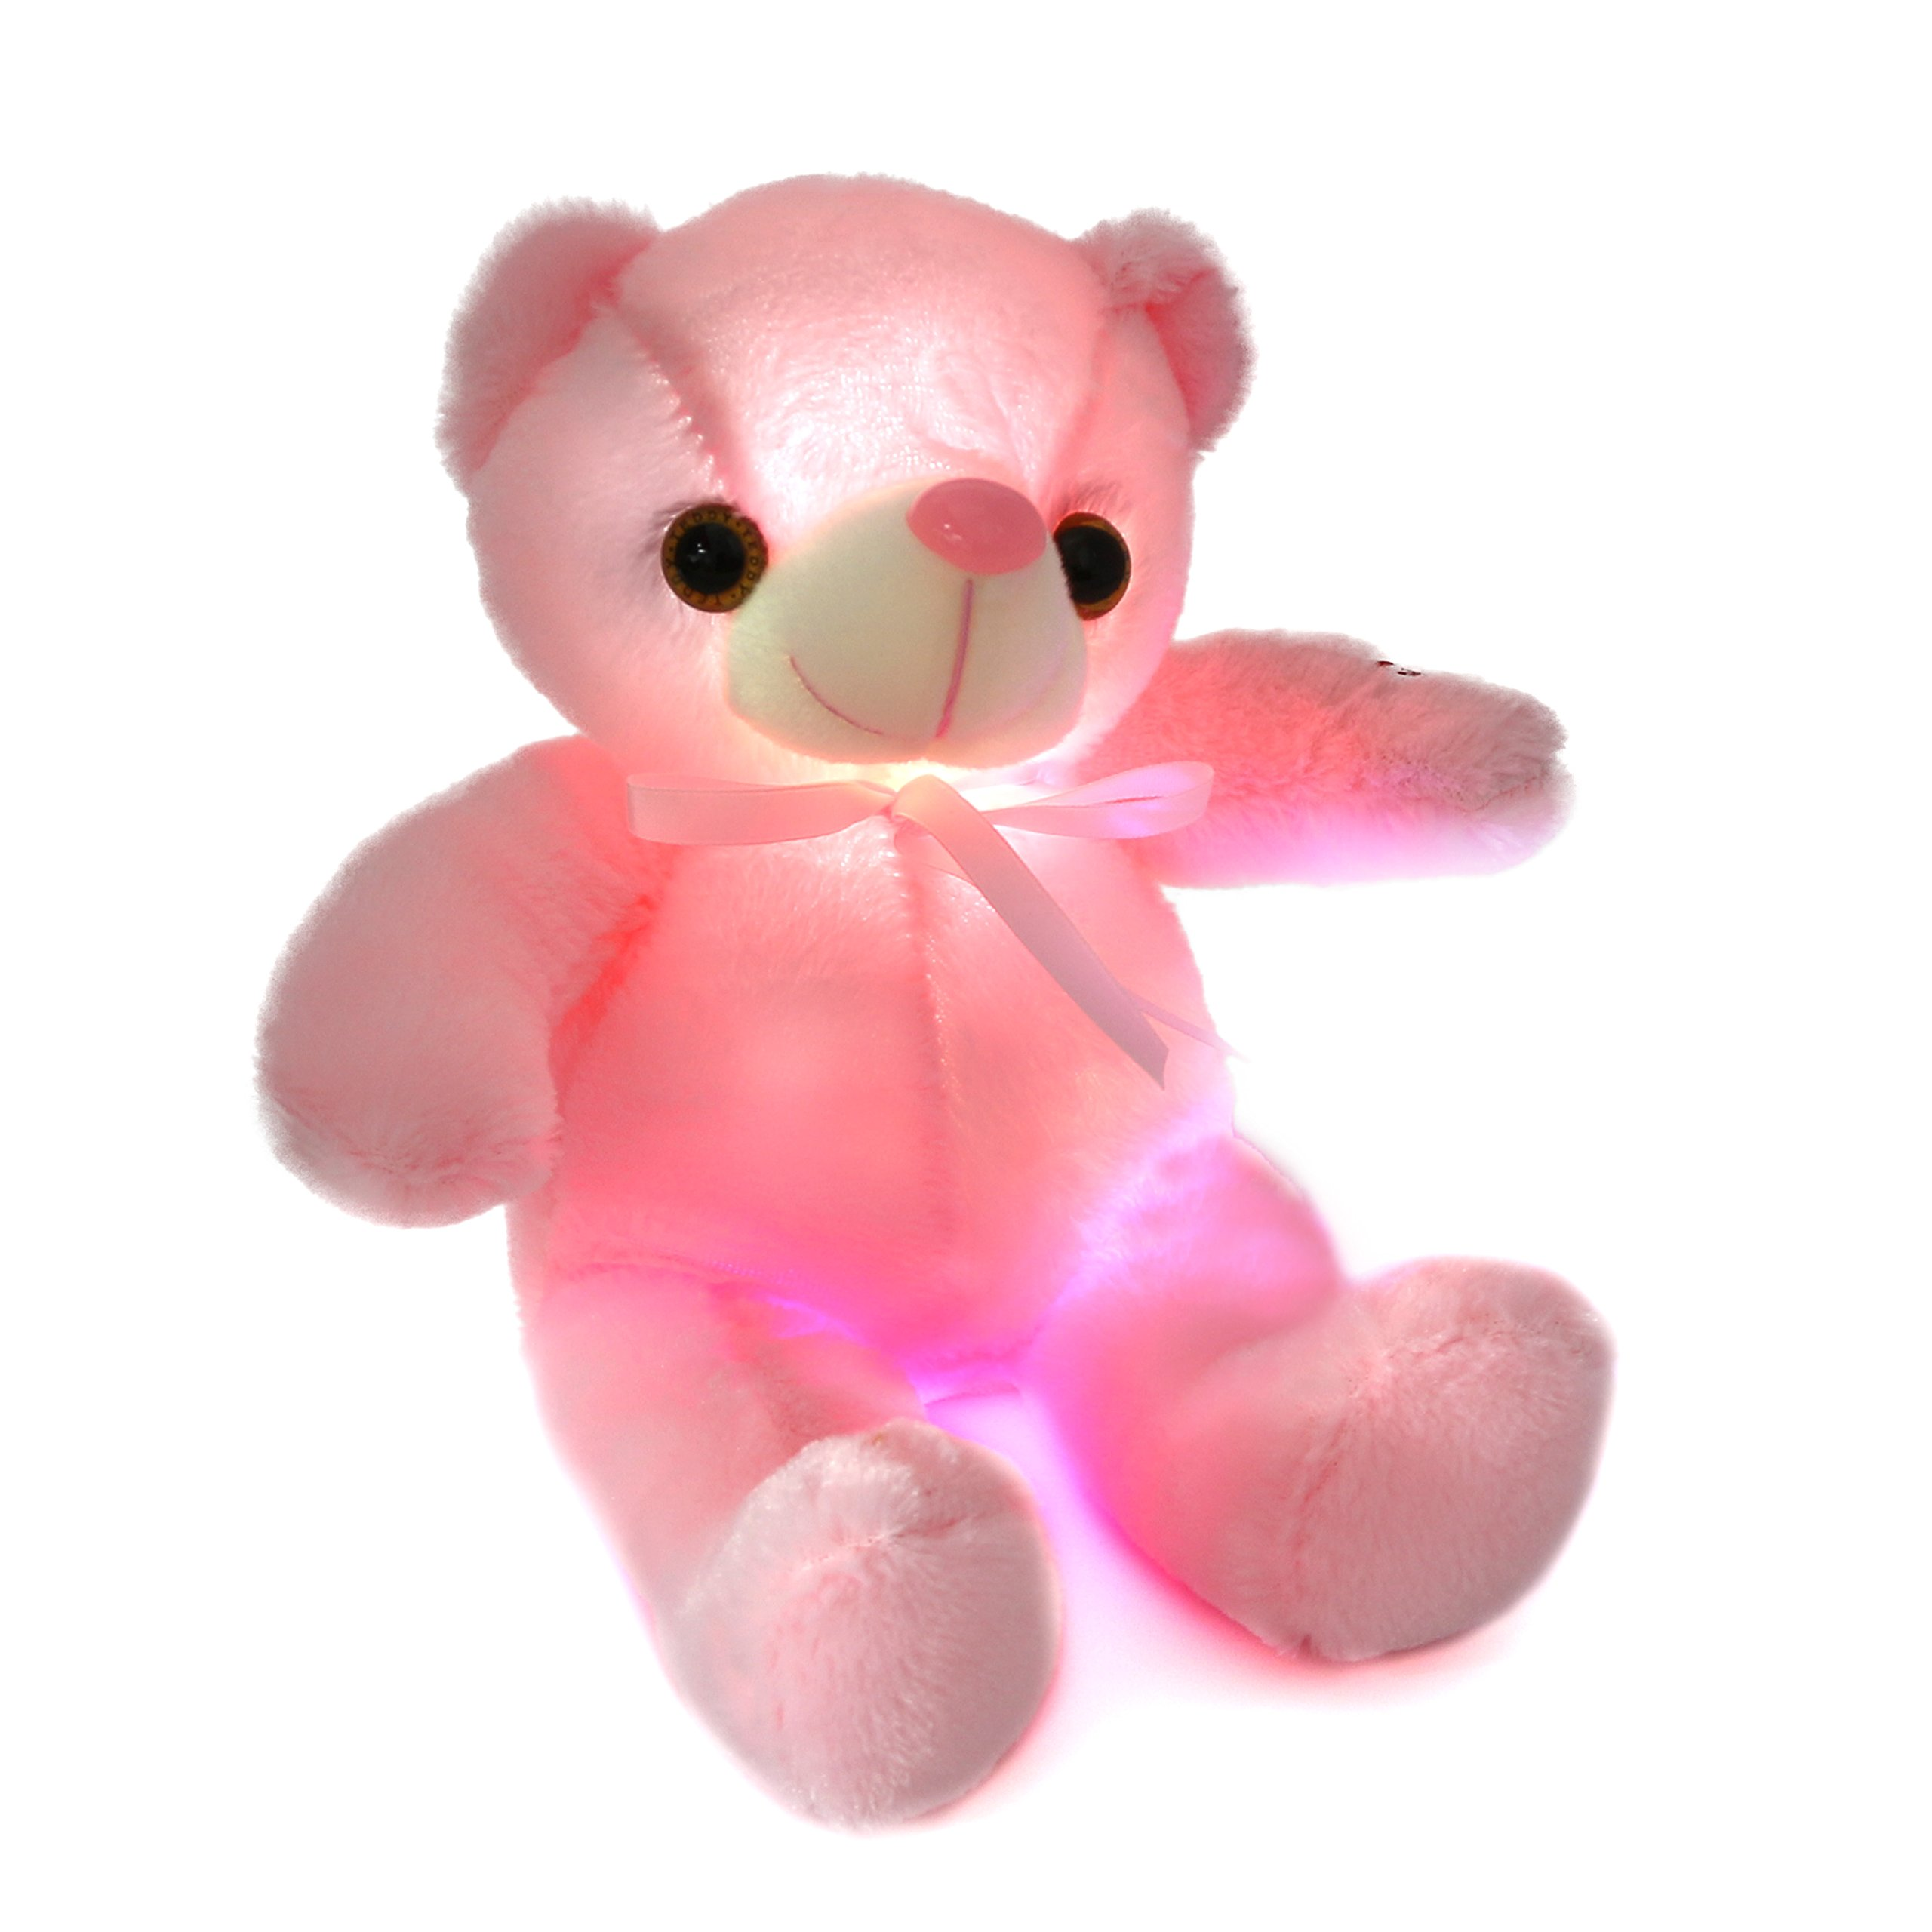 Houwsbaby Glow Teddy Bear with Bow-tie Stuffed Animal Light Up Plush Toys Gift for Kids Girlfriend Holiday Birthday Express Love, 12 inch (Pink)